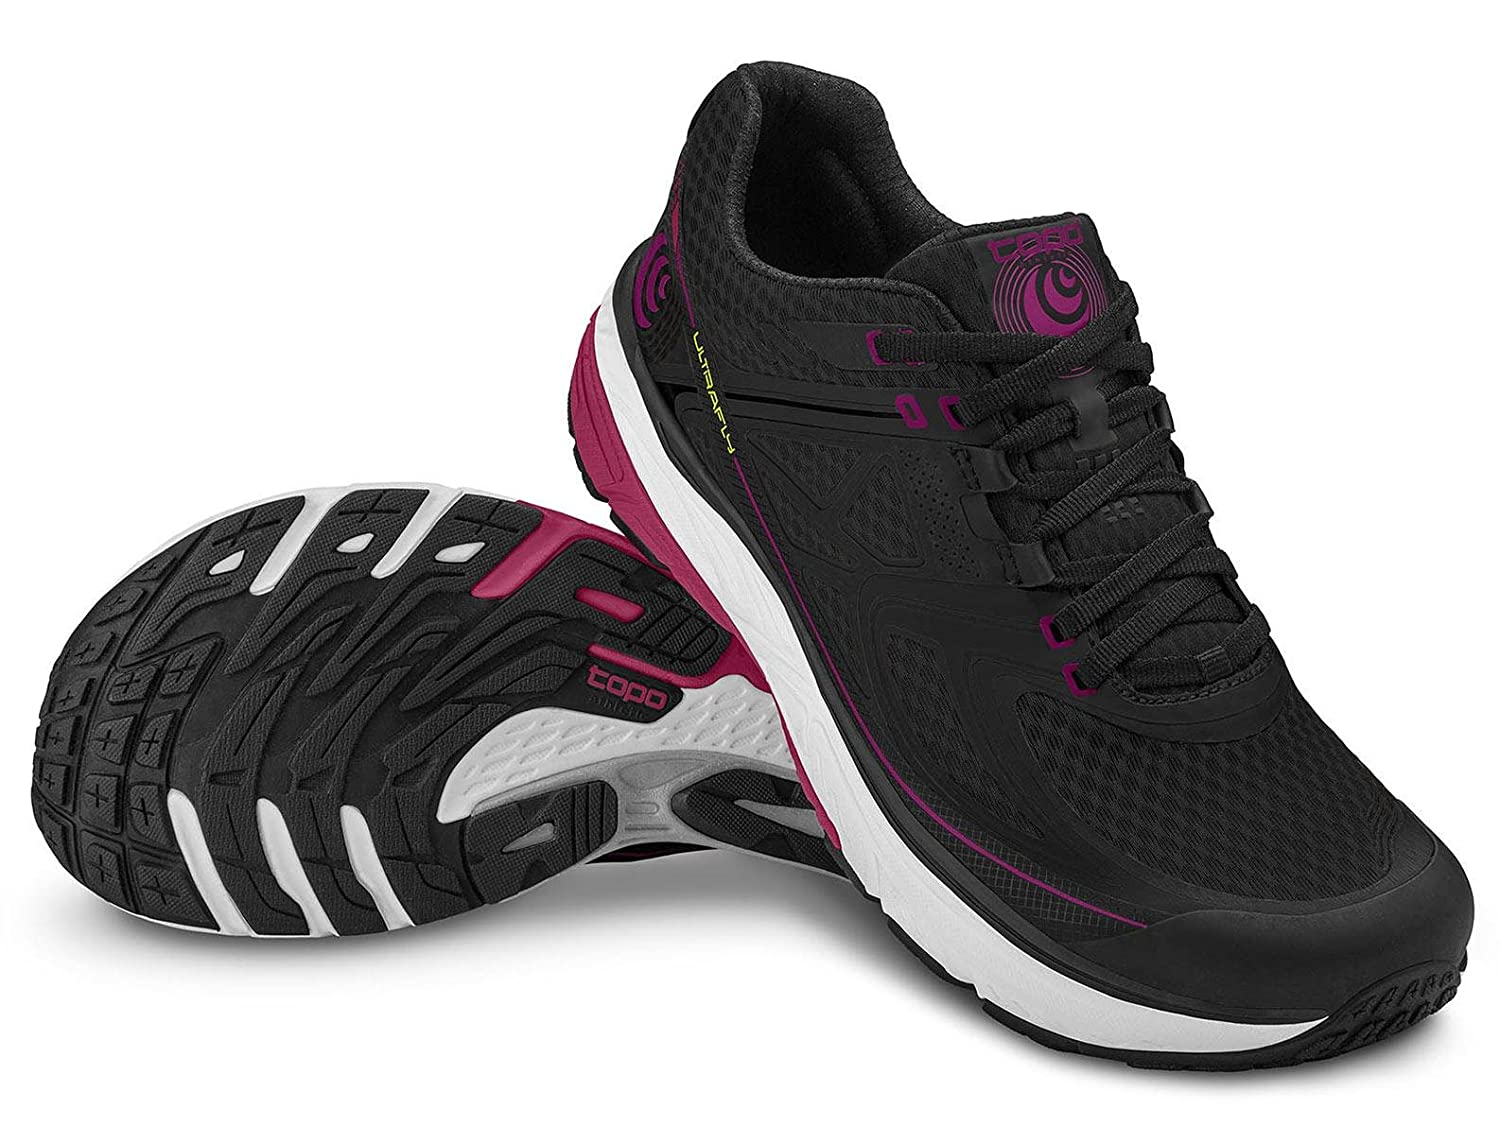 Topo Athletic B071XND58G Ultrafly Running Shoe - Women's B071XND58G Athletic 7.5 B(M) US|Black/Fuchsia 592fb2